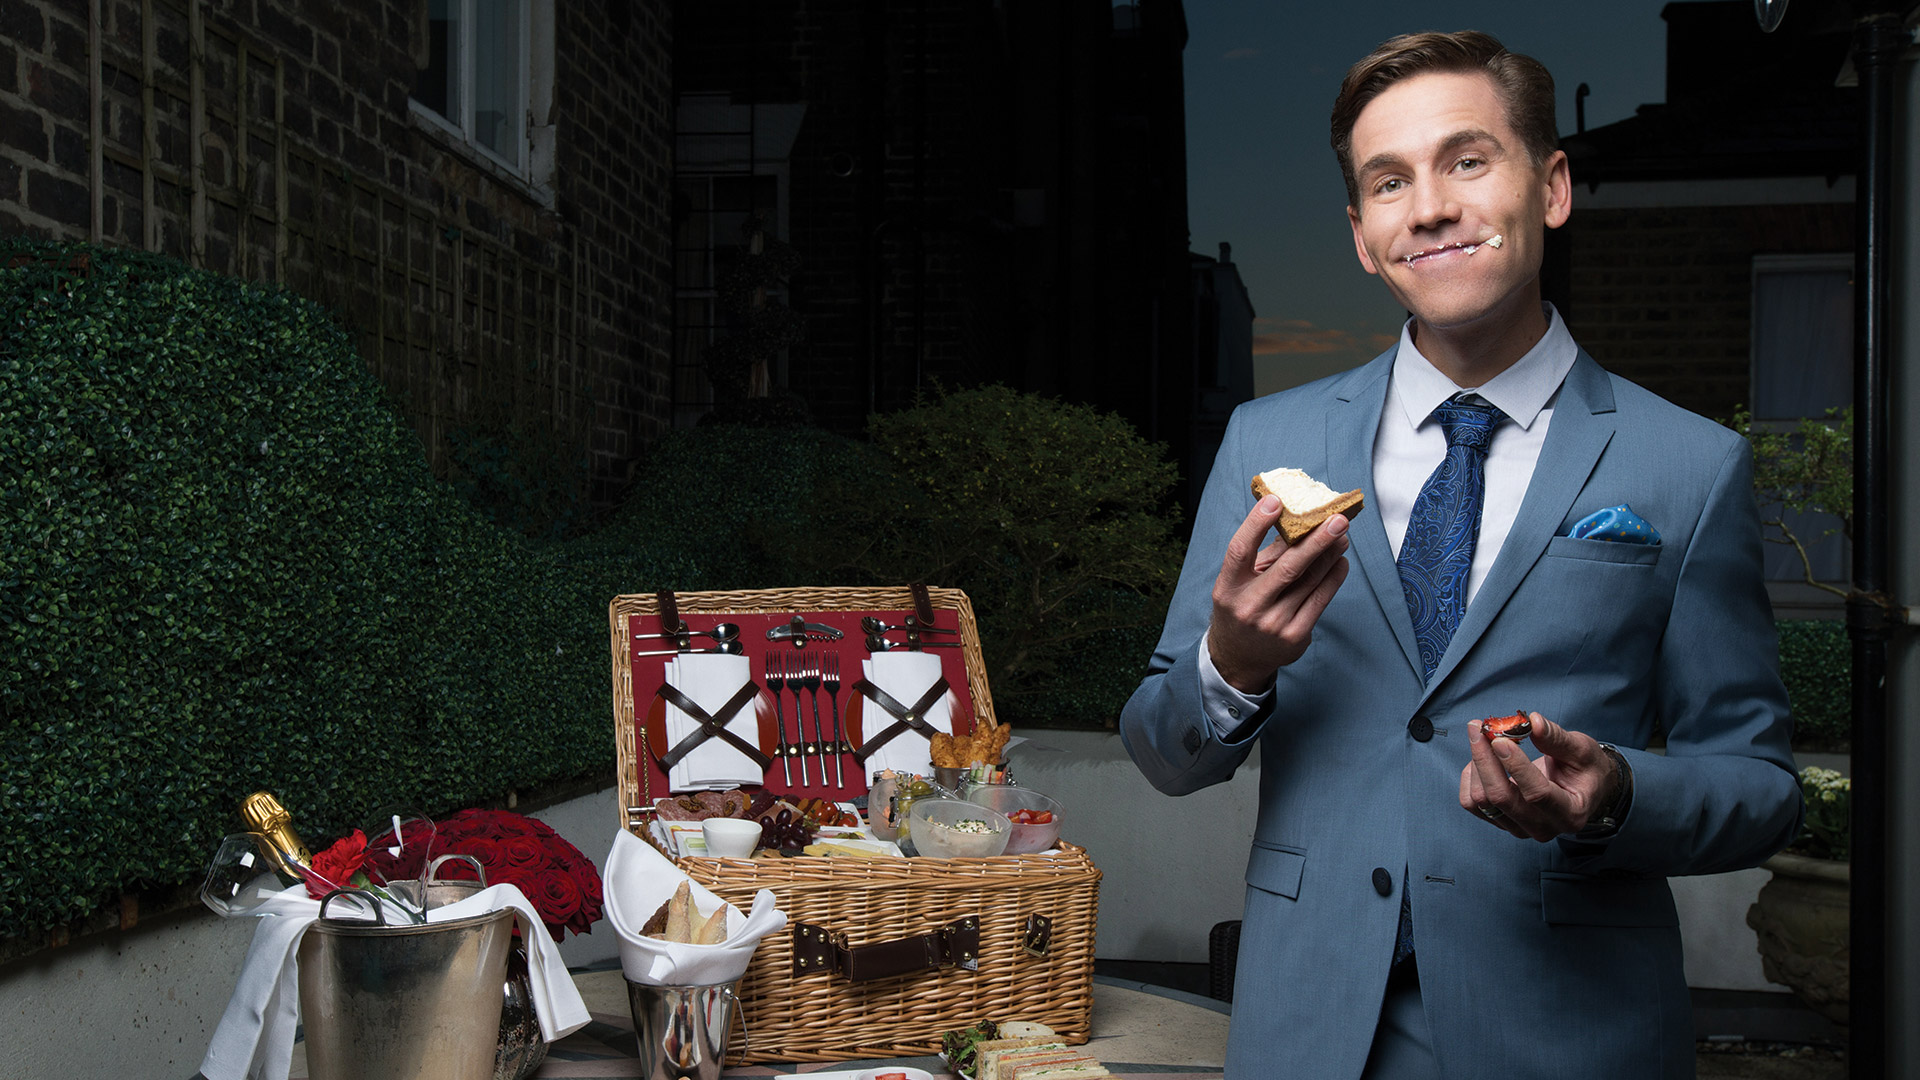 Brian Dietzen hosts a playful picnic